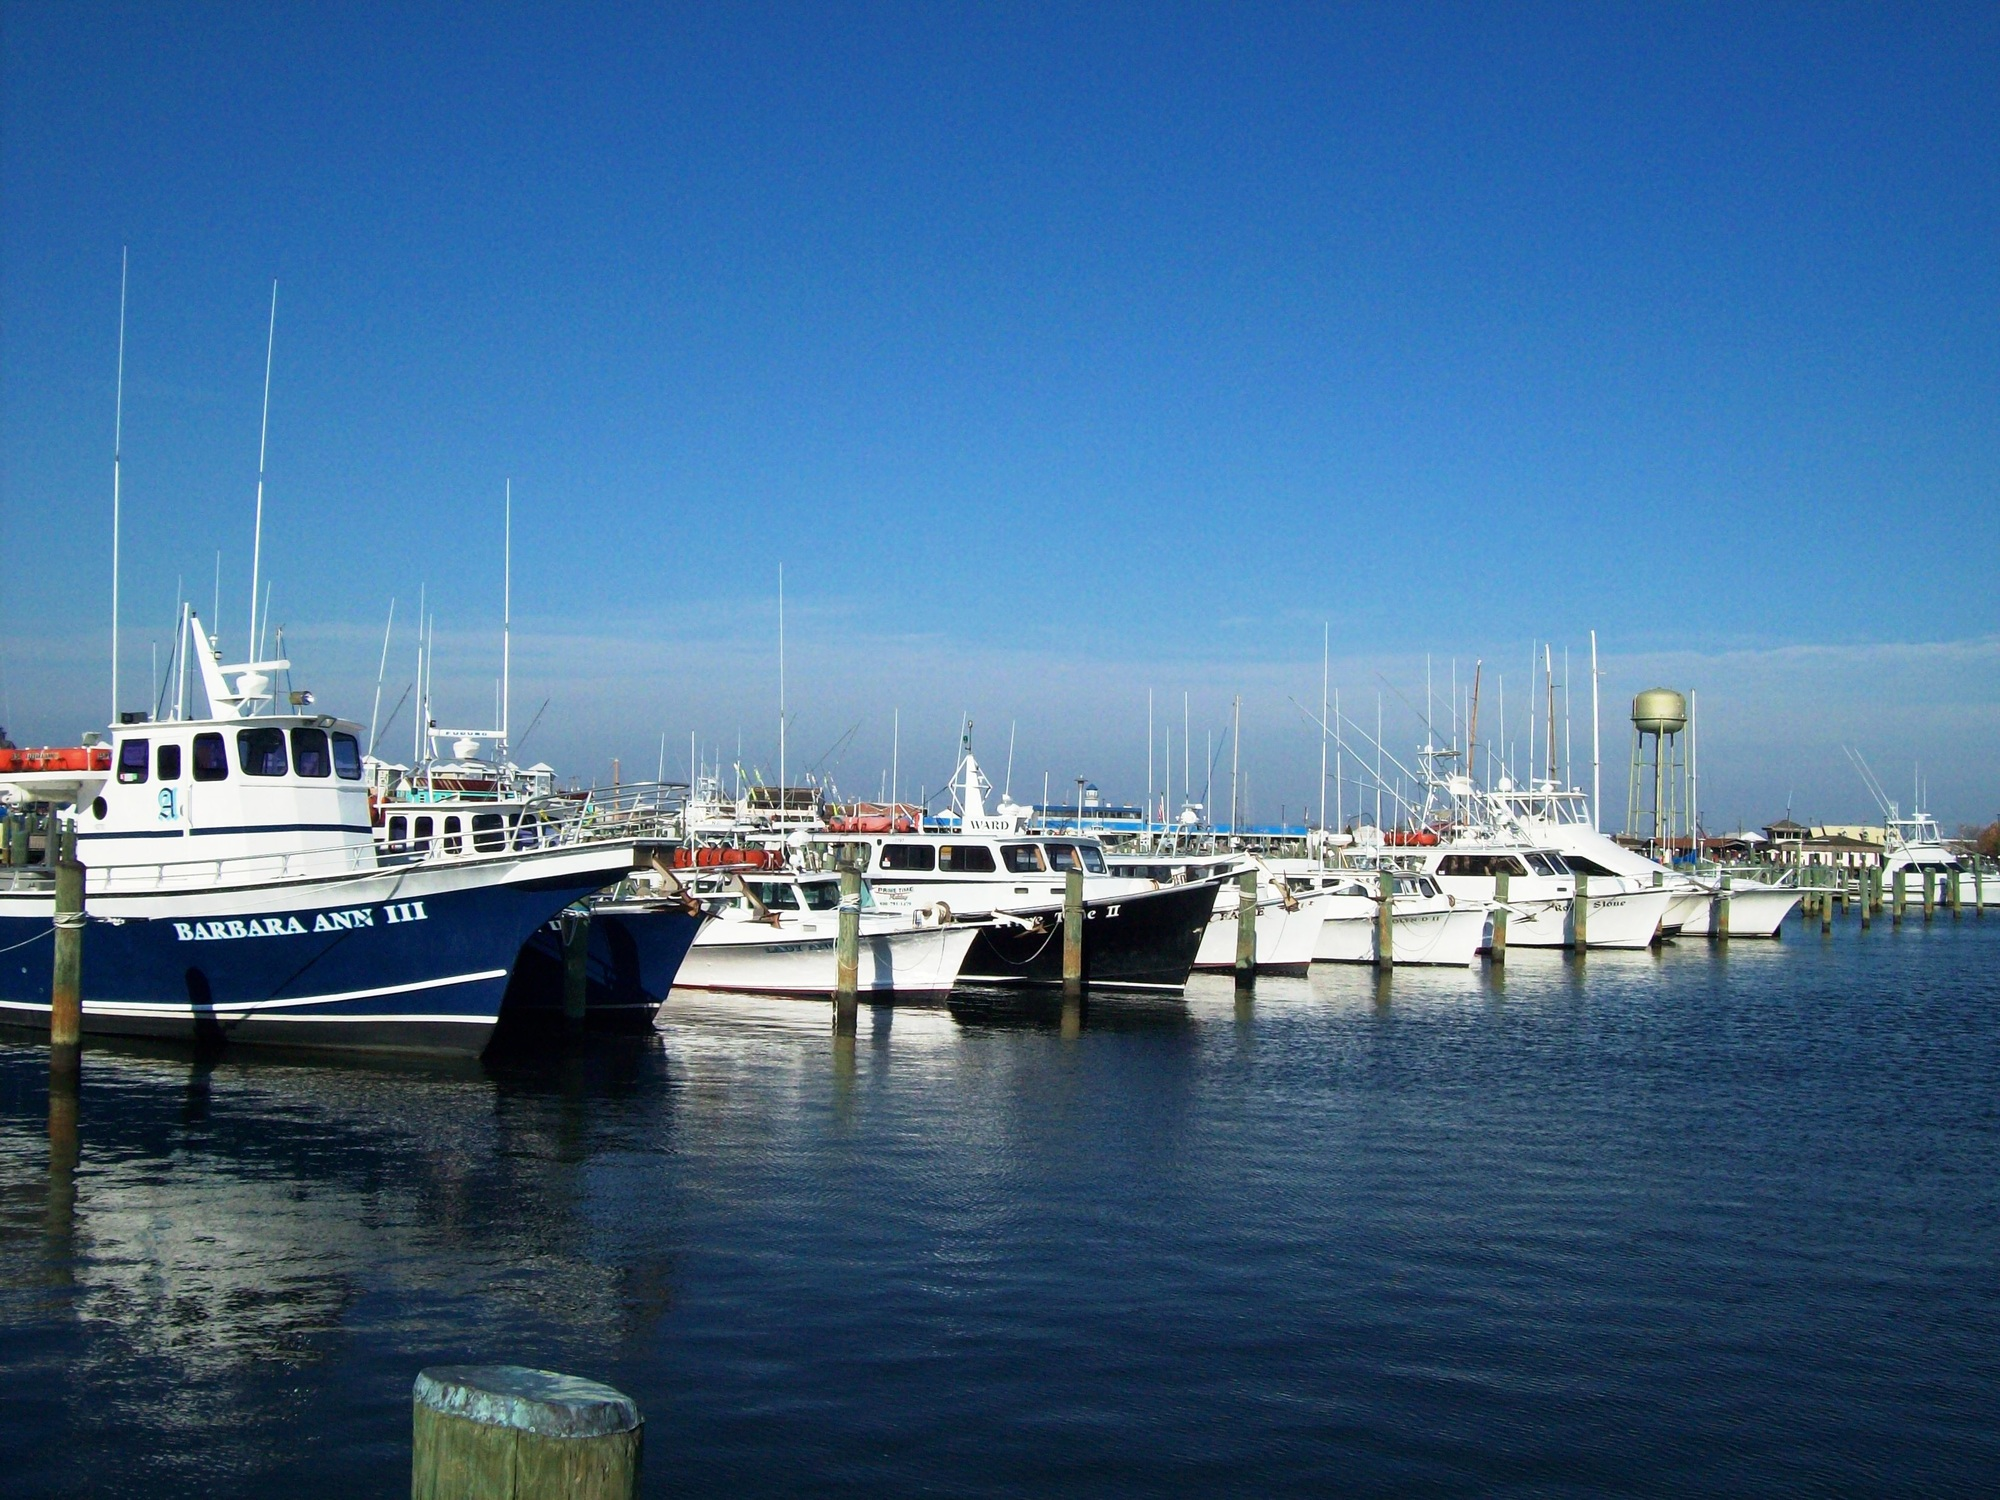 Somers Cove Marina in Crisfield, MD